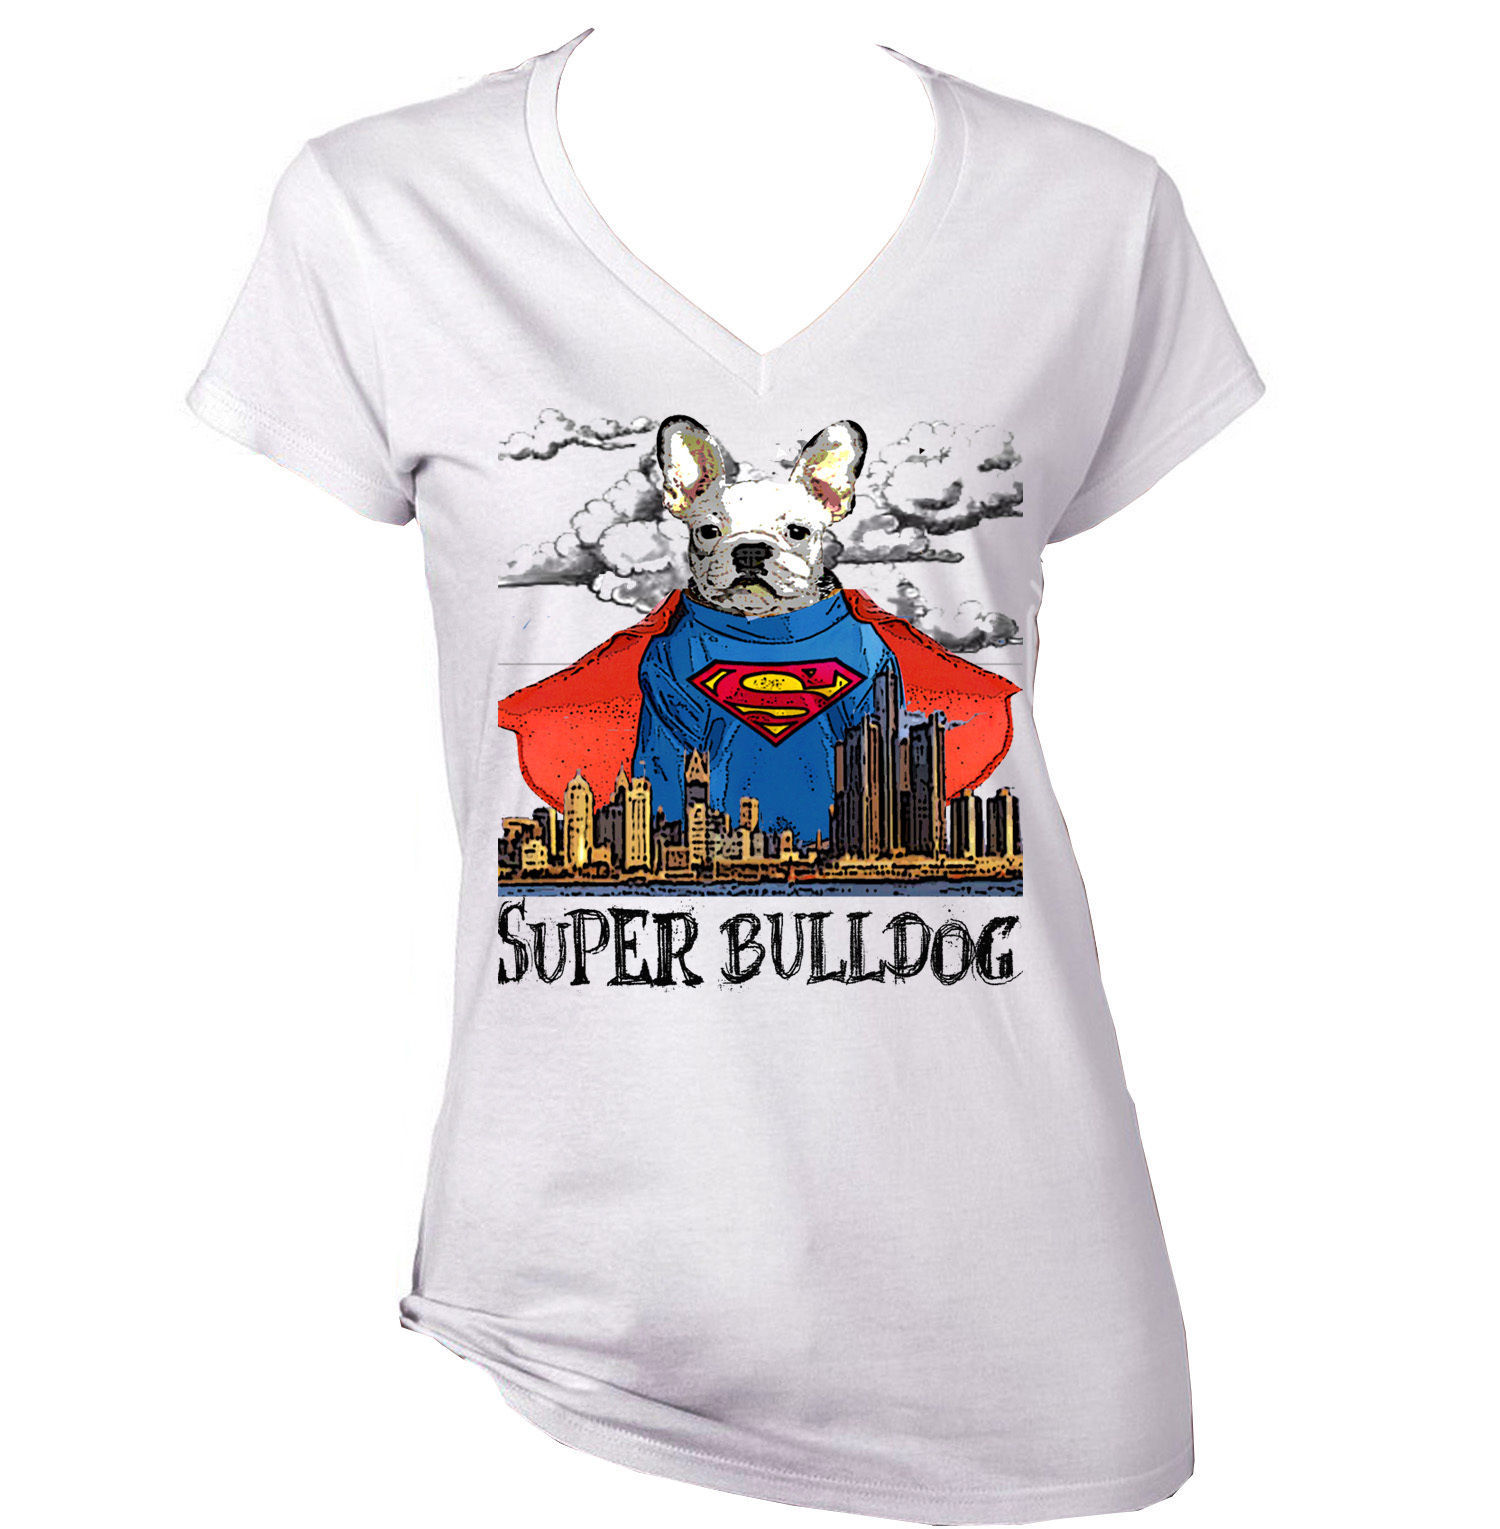 Primary image for SUPERMAN WHITE FRENCH BULLDOG  - NEW AMAZING GRAPHIC T-SHIRT - S-M-L-XL-XXL